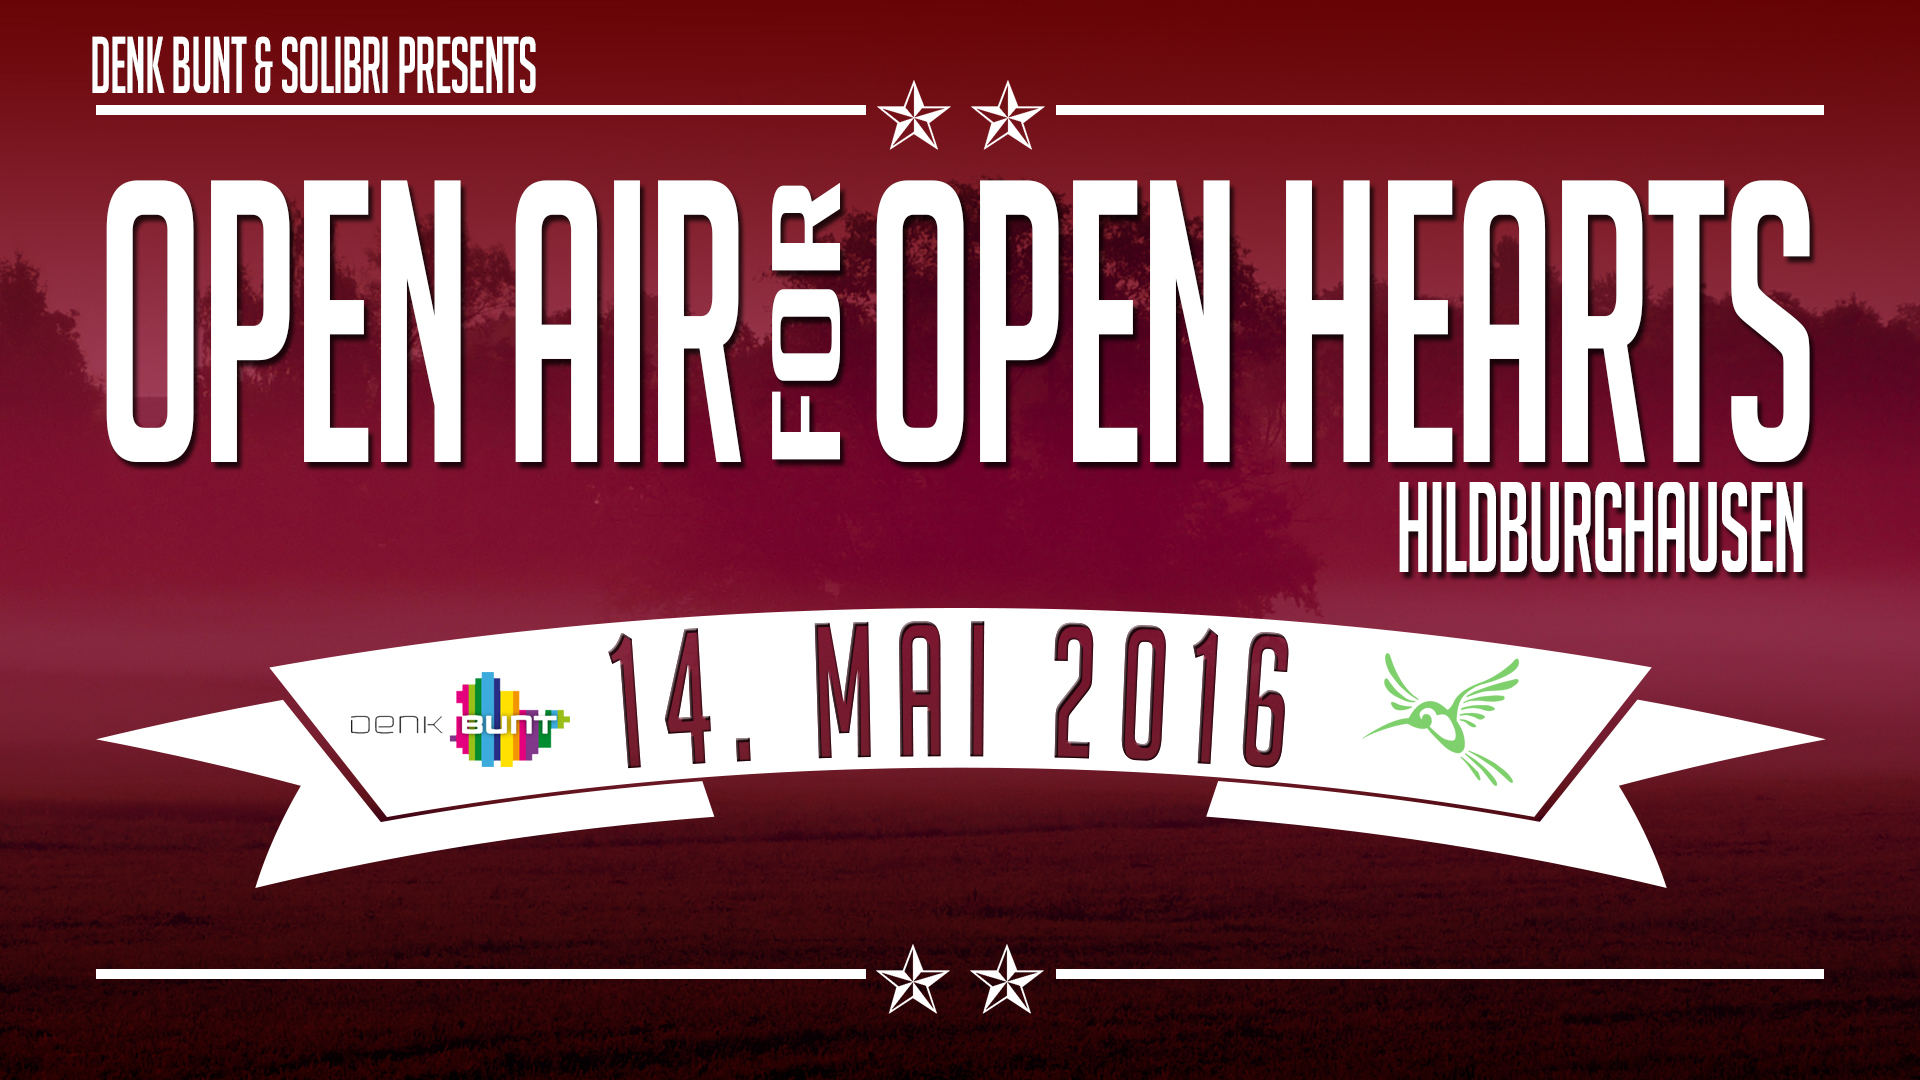 Solibri Festival Open Air for Open Hearts